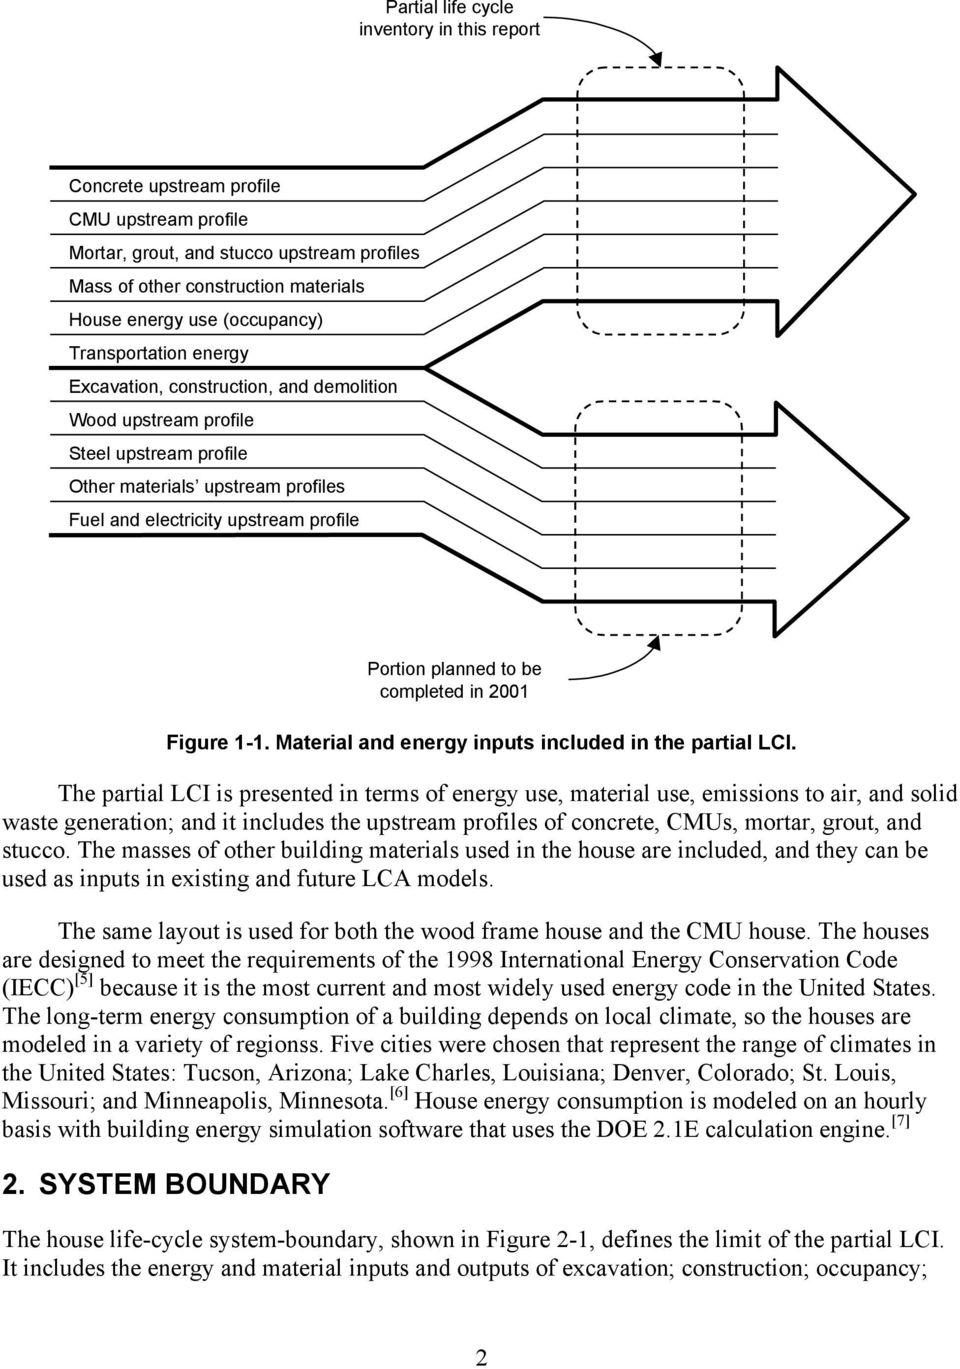 Partial Environmental Life Cycle Inventory of a Concrete